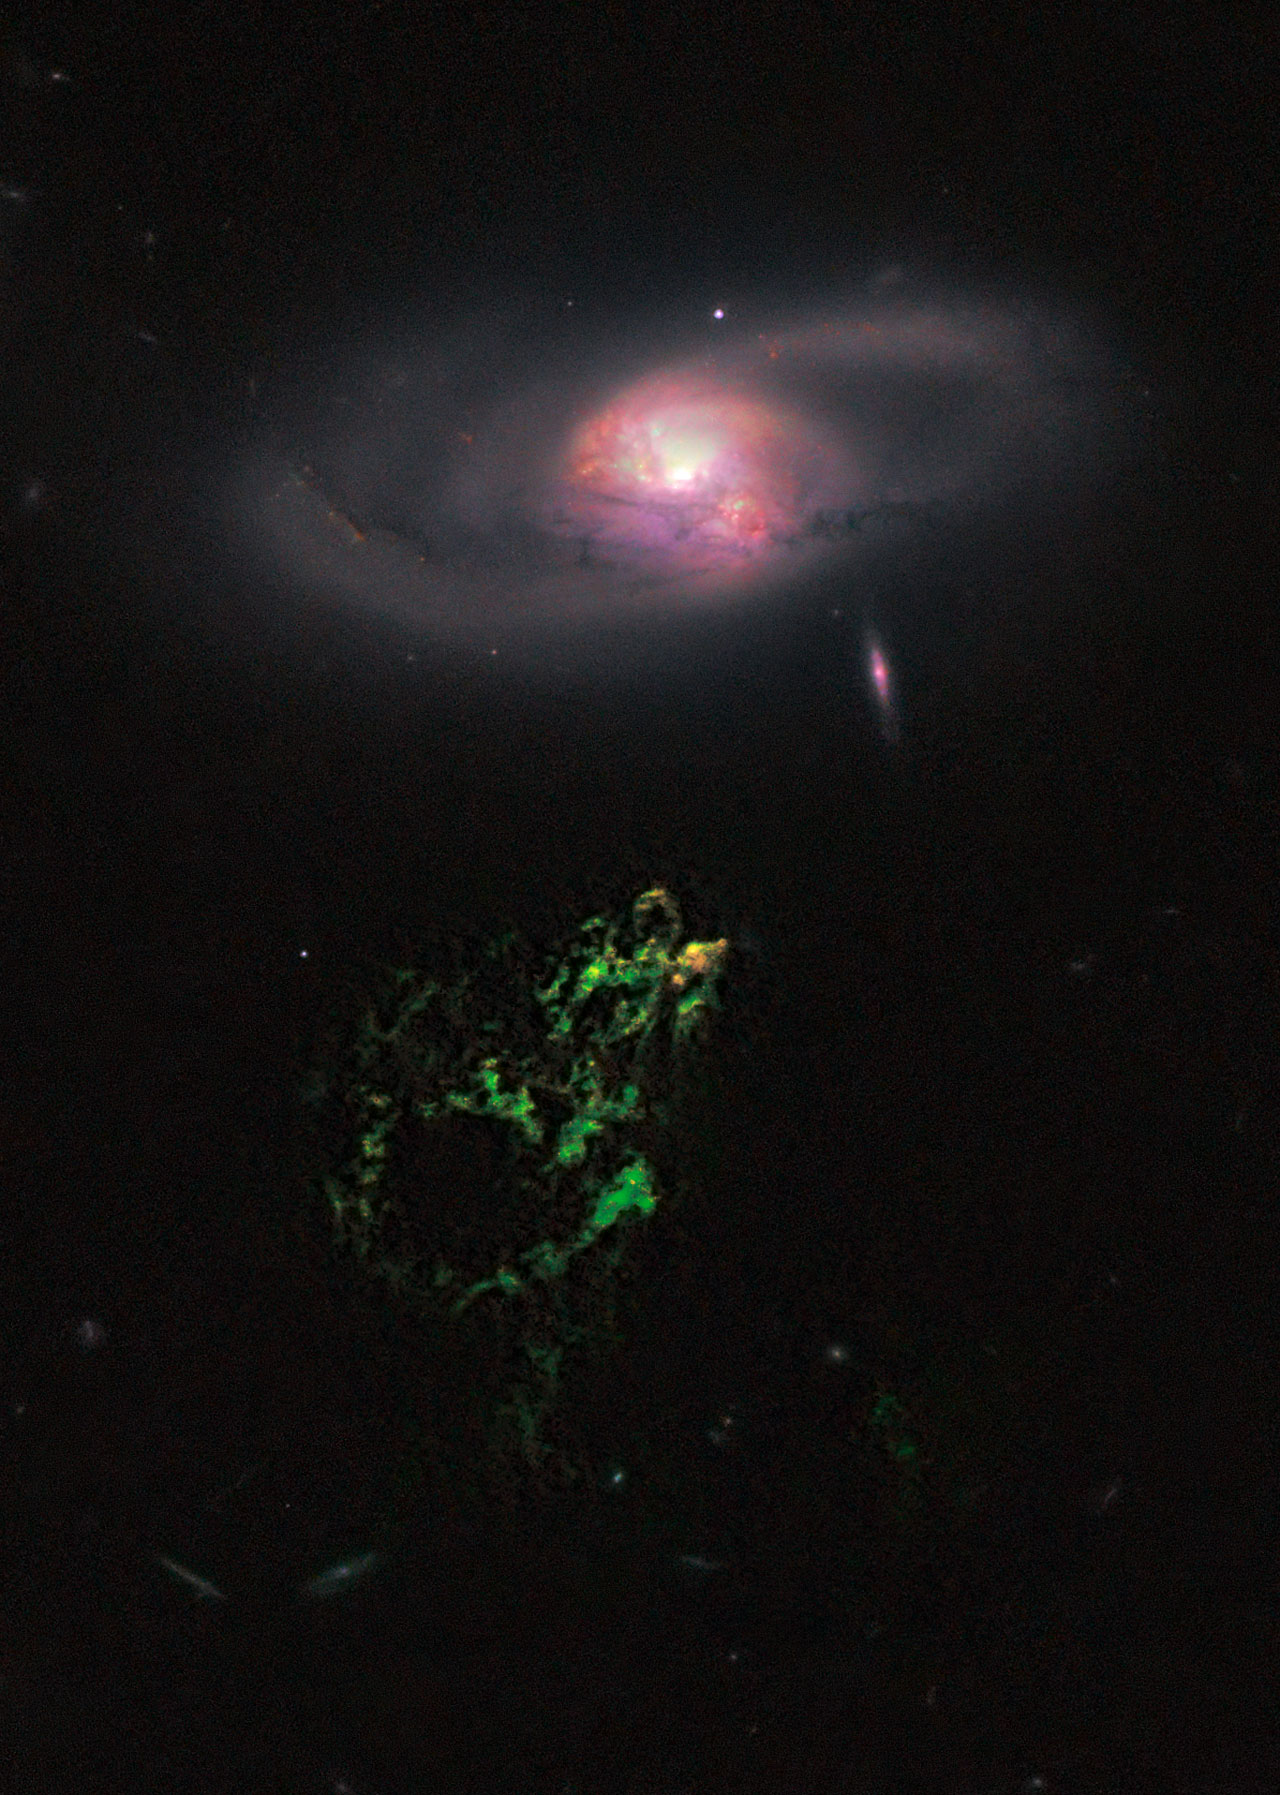 Hubble snaps image of space oddity